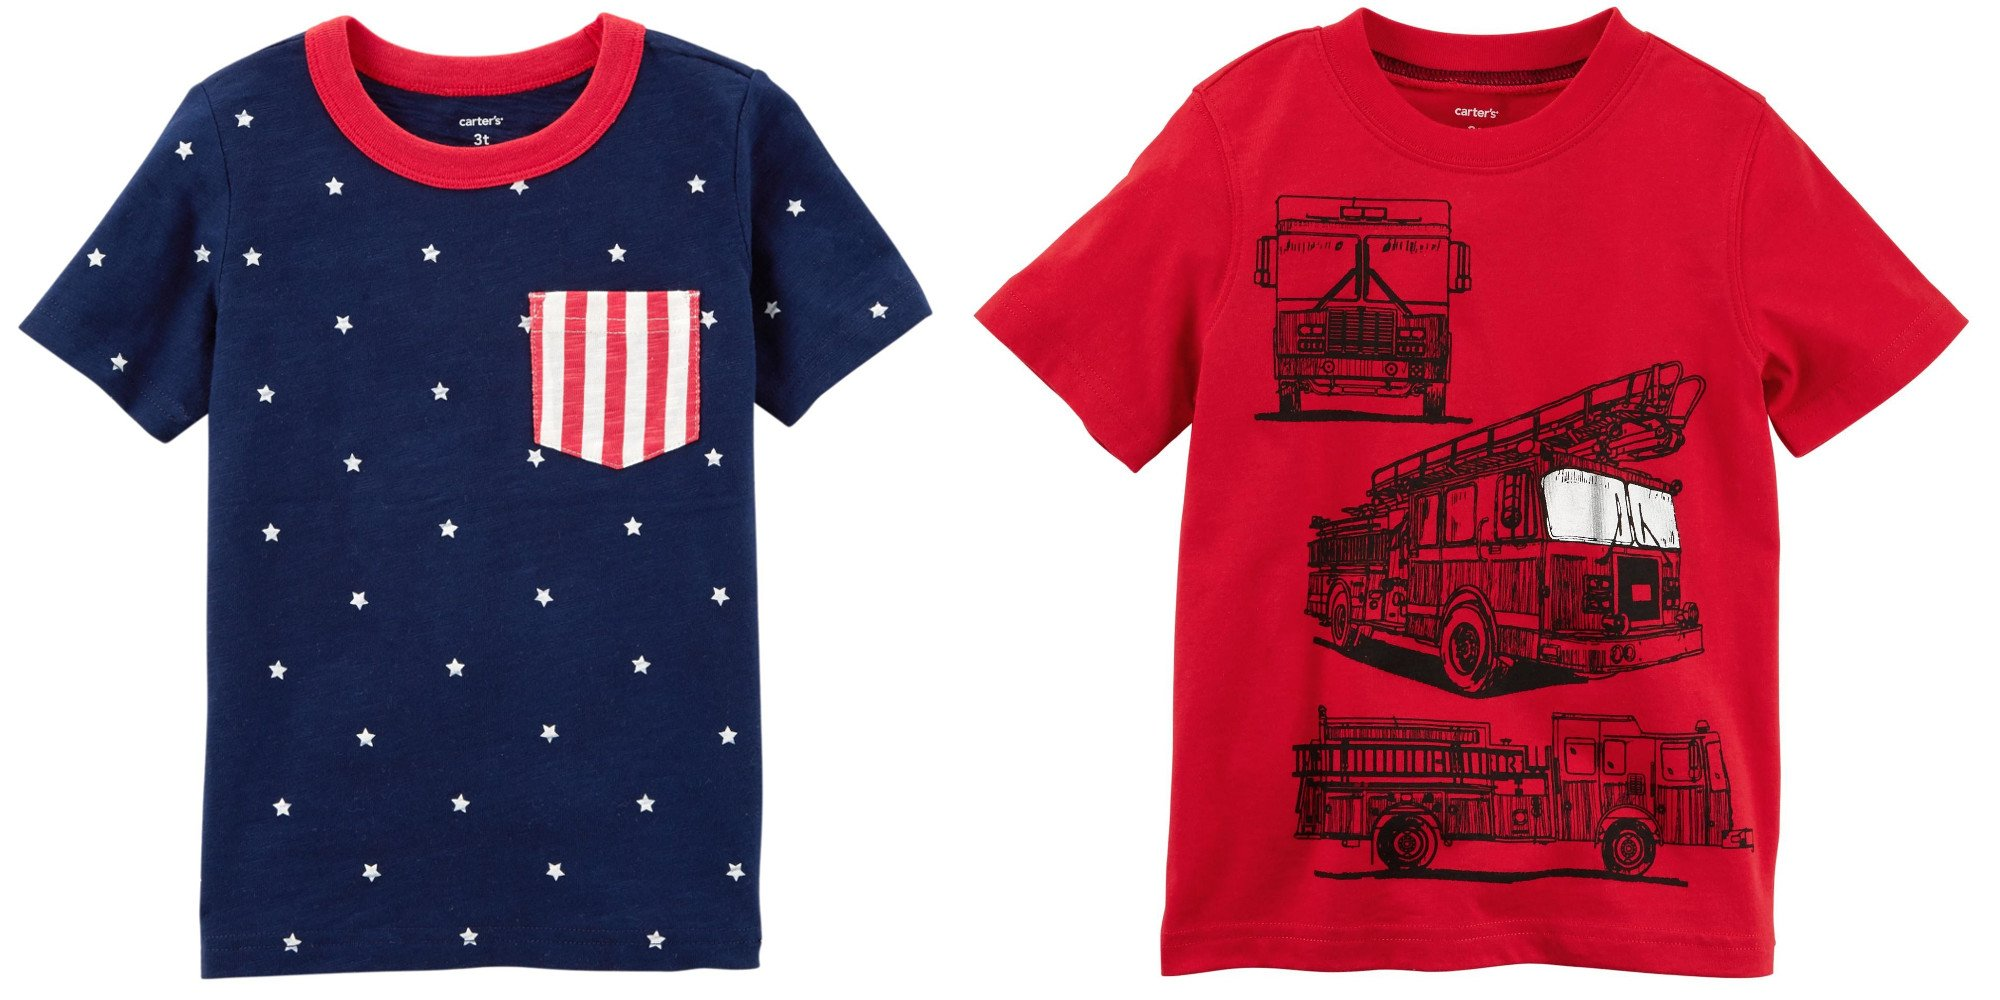 Carter's Boy's Set of 2 Cotton T-Shirts Toddler Little and Big Boys (4T, Navy 4th of July and Red Fire Engine)